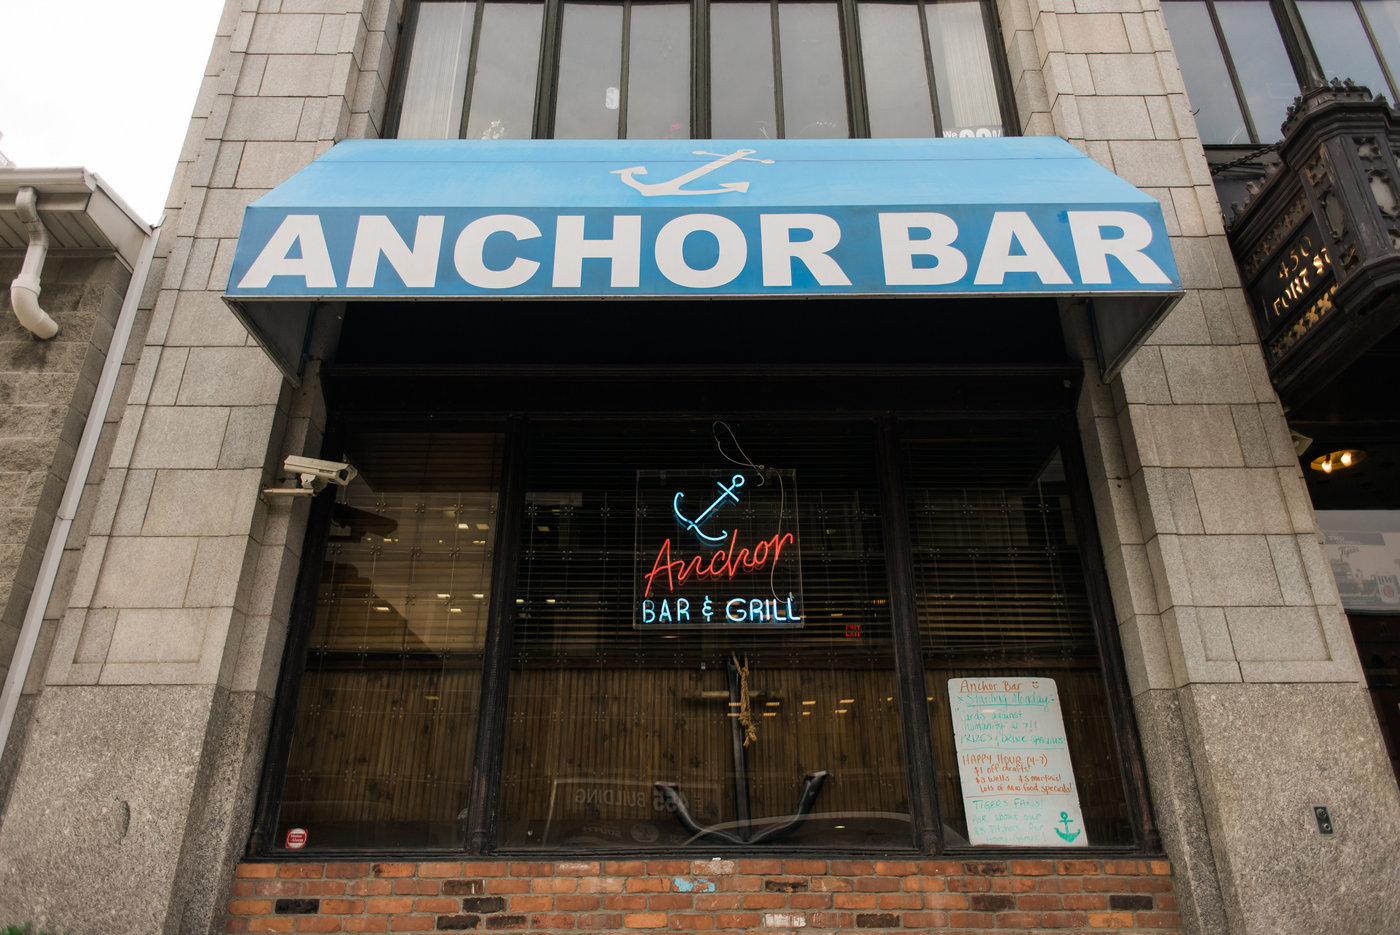 Anchor Bar-Anchor Bar-0002.jpg